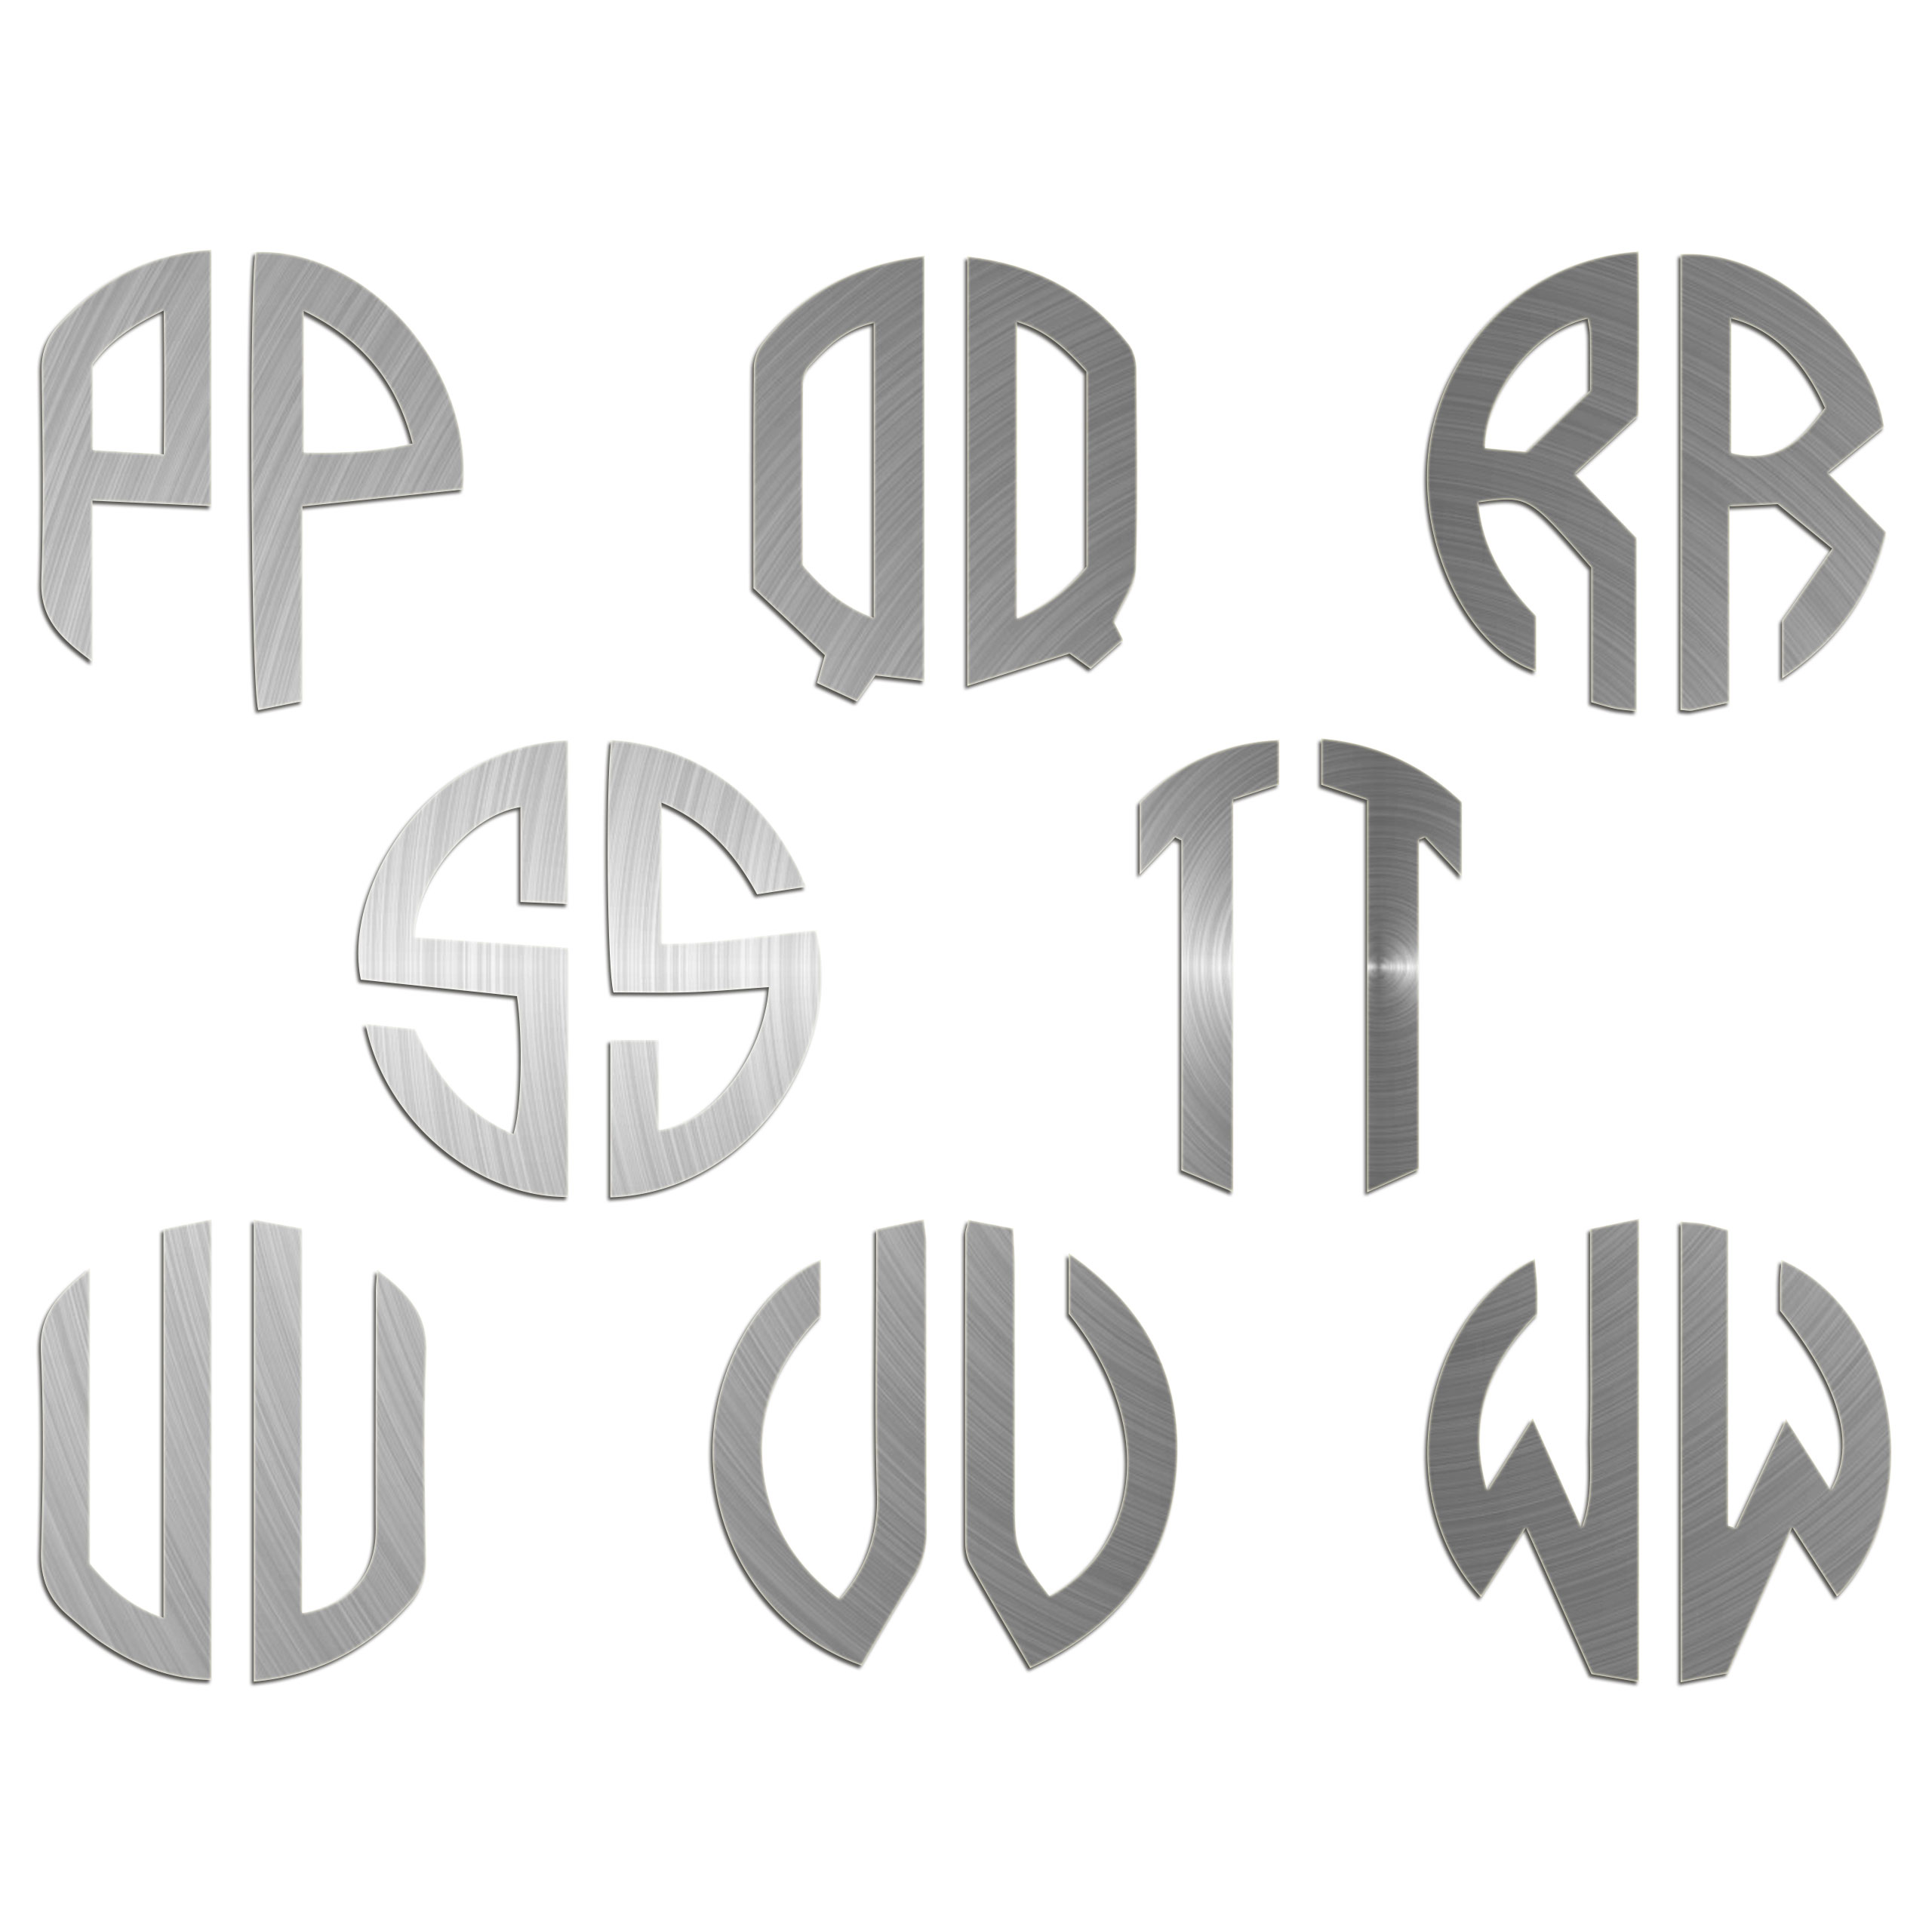 JasonCarlMorgan-JCM-Graphics-Personalised-Initials-Monogram-Sticker thumbnail 20